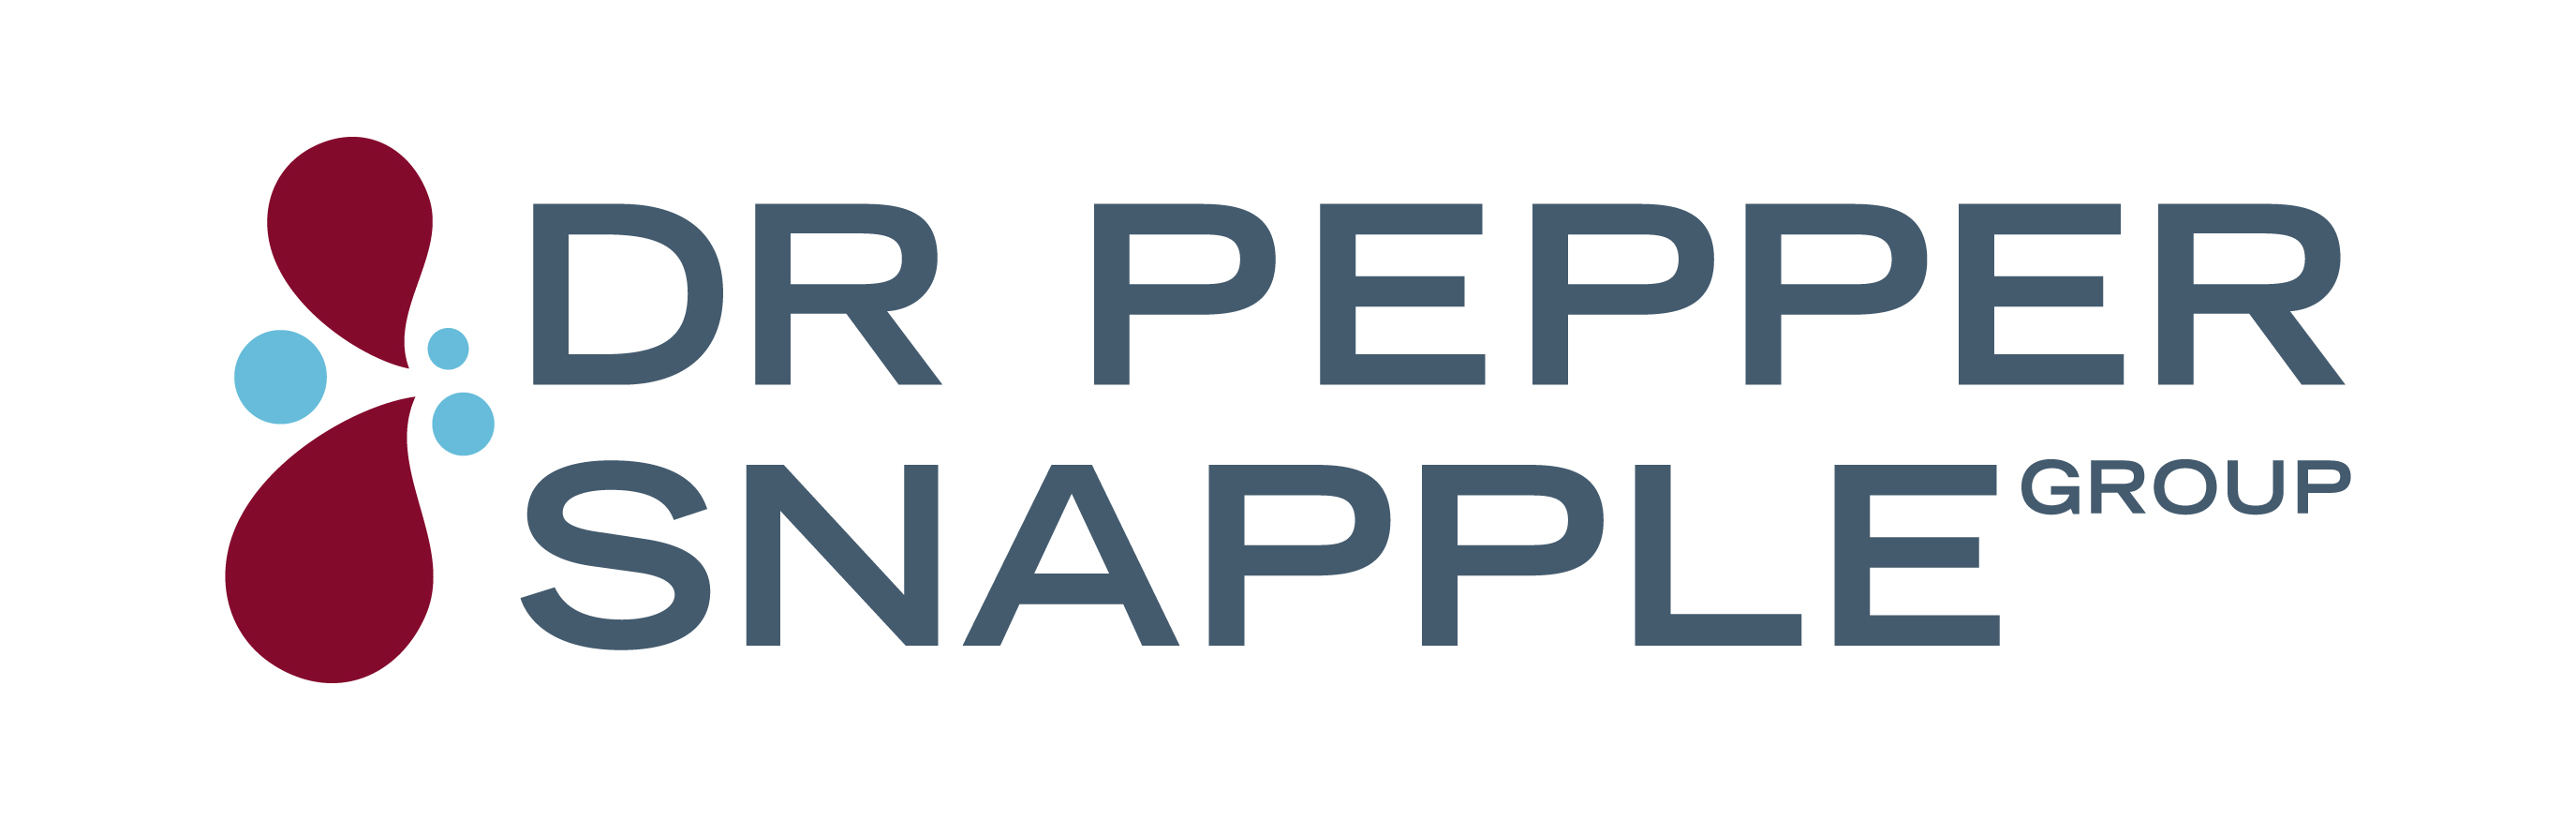 Dr. Pepper Snapple Group awards park recycling grants